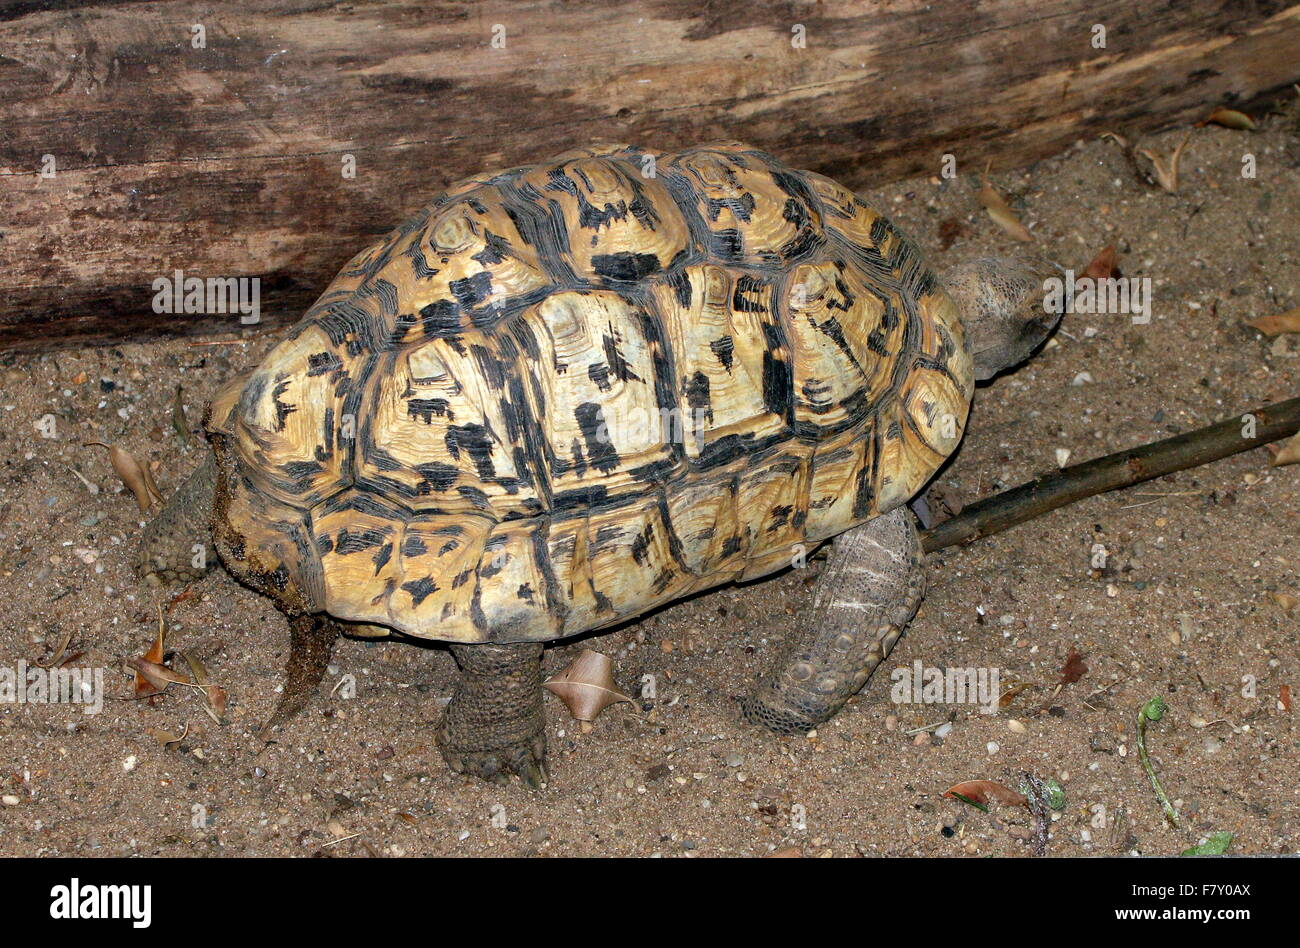 East African Leopard tortoise (Stigmochelys pardalis), native on savannas from Sudan to the Southern cape - Stock Image